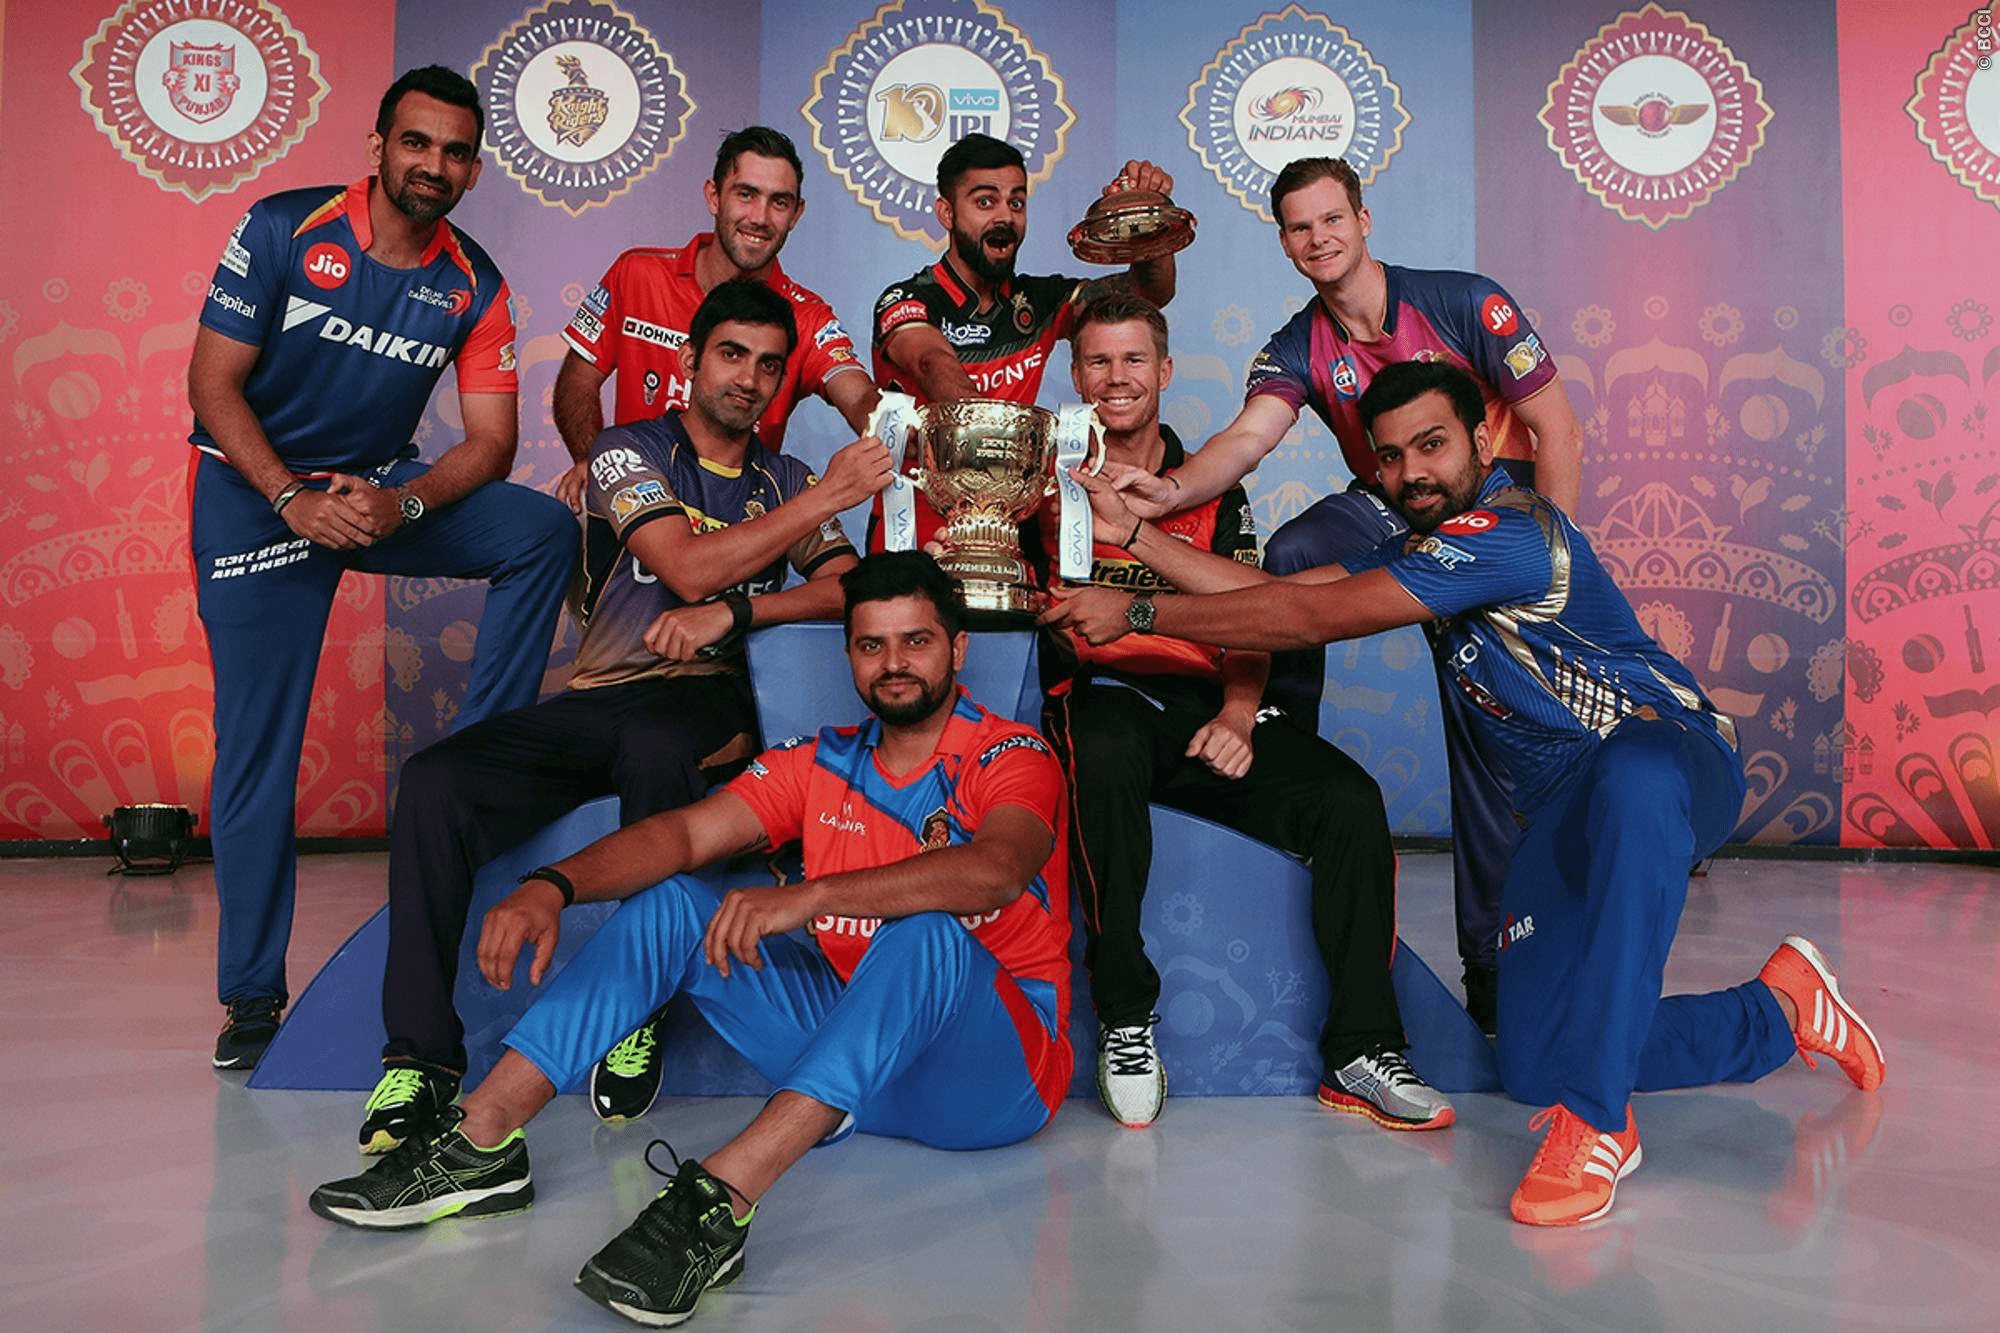 IPL tournament, Indian Premier League, IPL, King's Eleven Punjab, KXIP, Mumbai Indians, MI, Royal Challenger Bangalore, RCB, Rising Pune Supergiants, Virat Kohli, Steve Smith, MS Dhoni